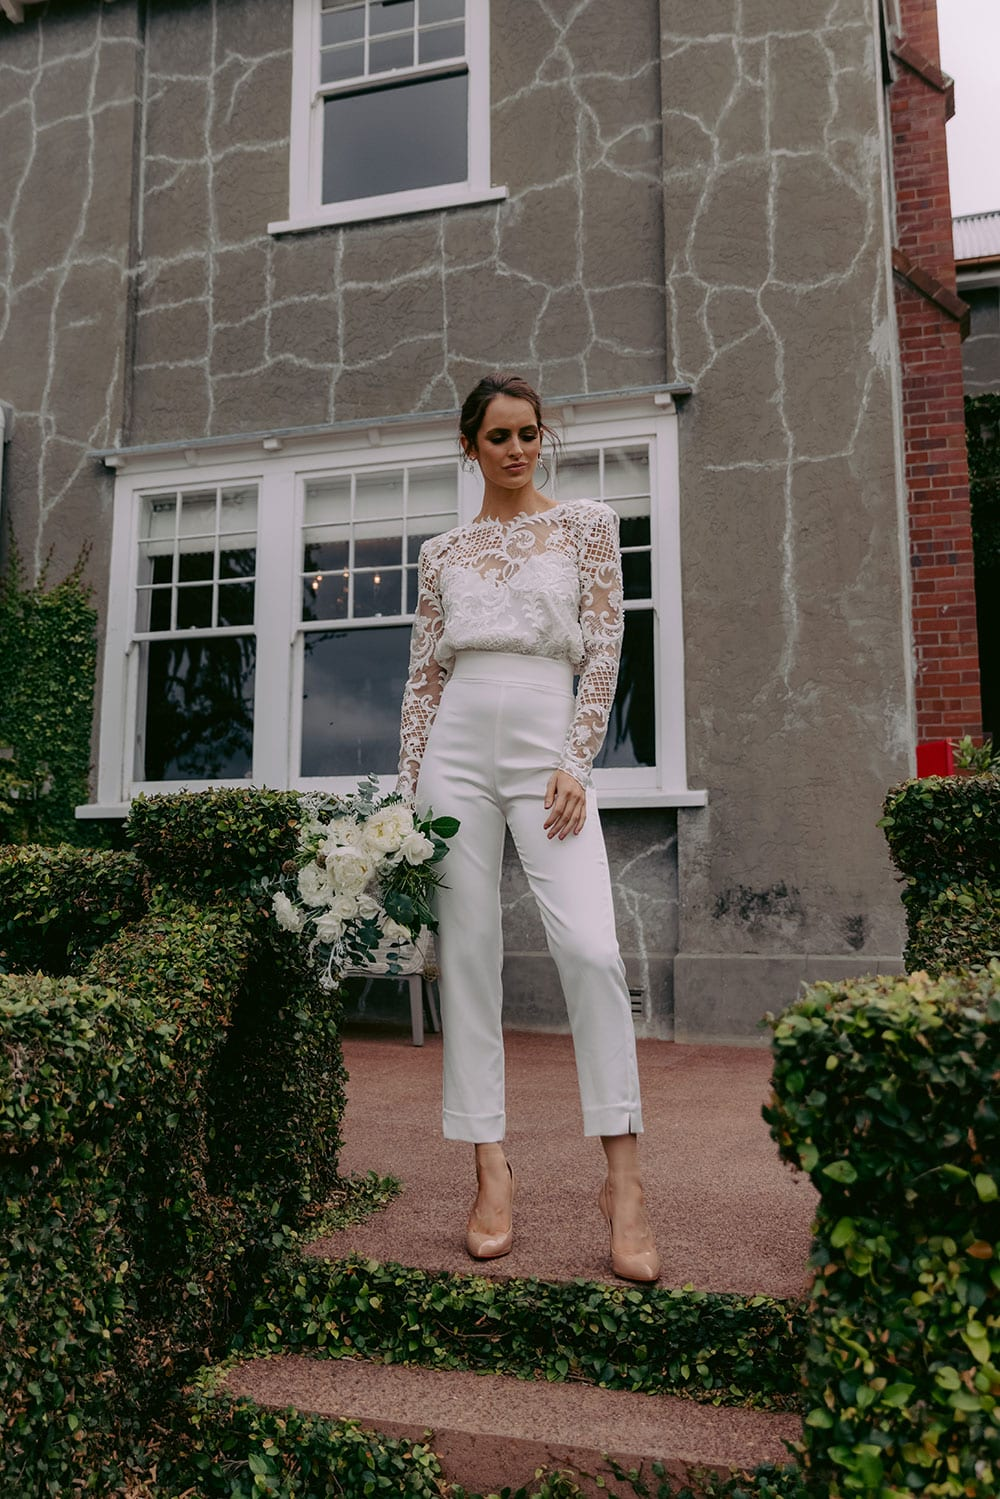 Aurora Wedding Trousers and Blouse from Vinka Design - Elegantly tailored trouser combined with a beautiful lace blouse for the Modern Bride. The blouse features a high neck and low back, with in-built camisole, fitted sleeves, & pearl buttons. Model wearing Trousers and Blouse outside Heritage building in Clevedon Gardens, Auckland.